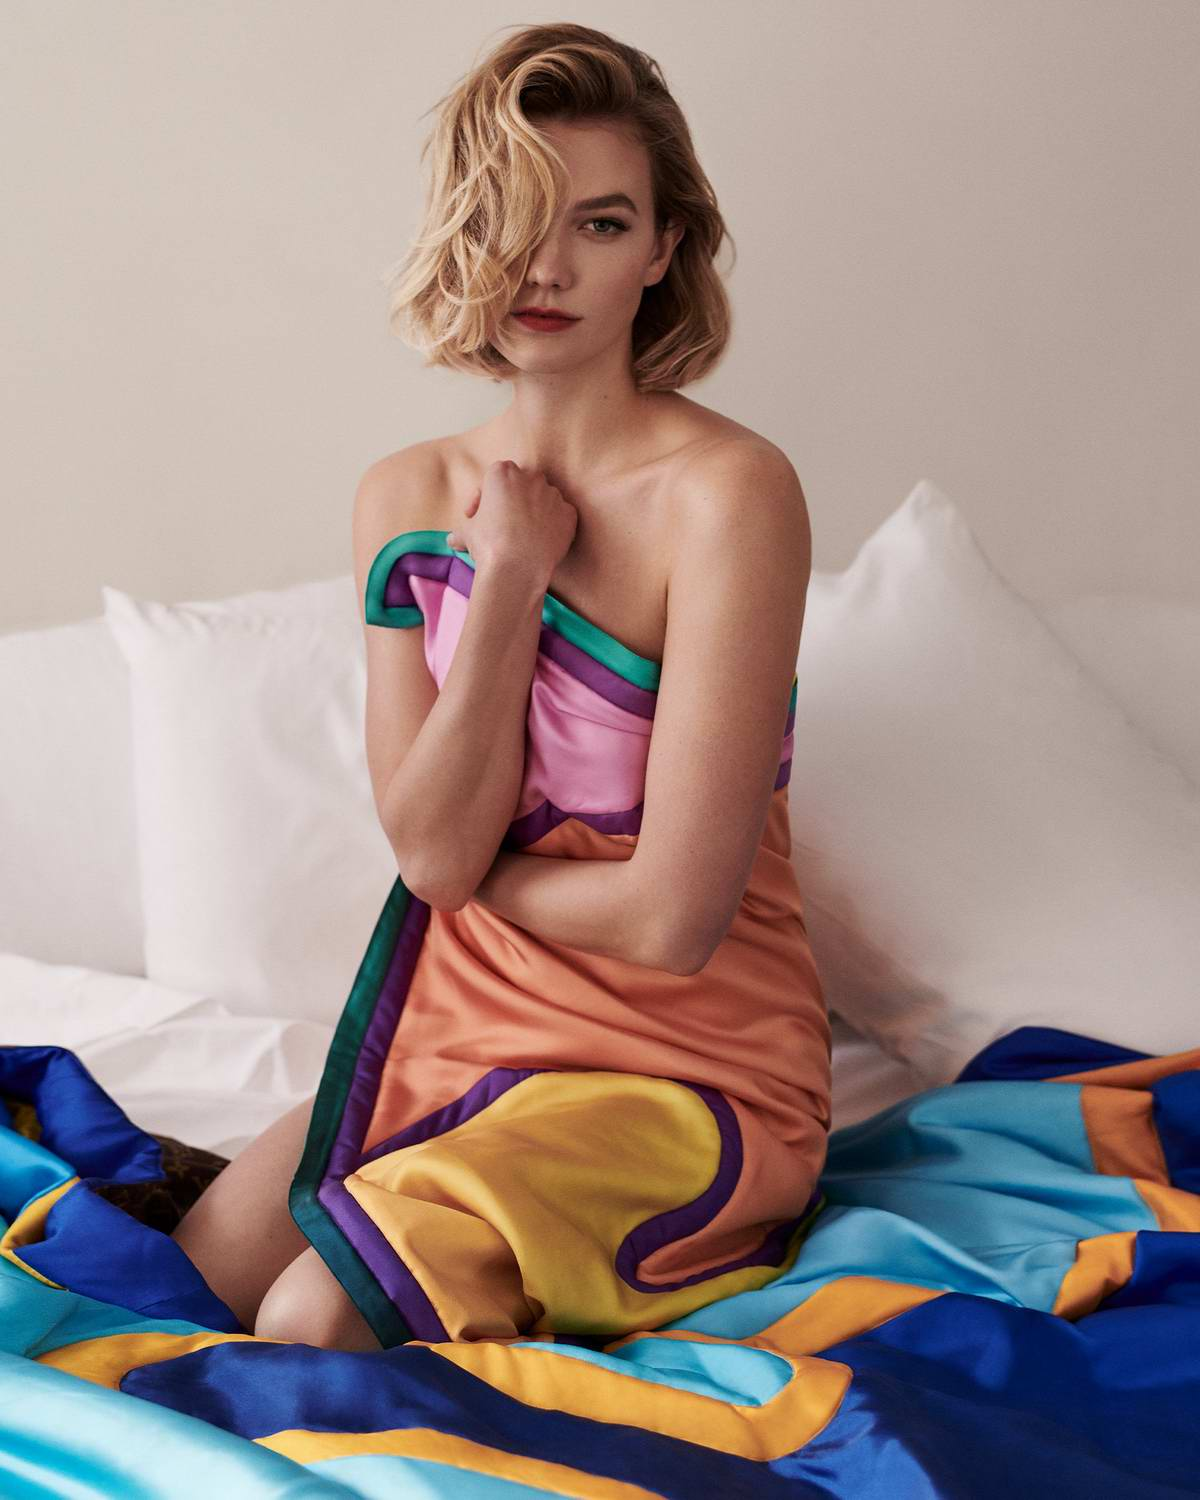 Karlie Kloss features in Louis Vuitton Campaign 2019